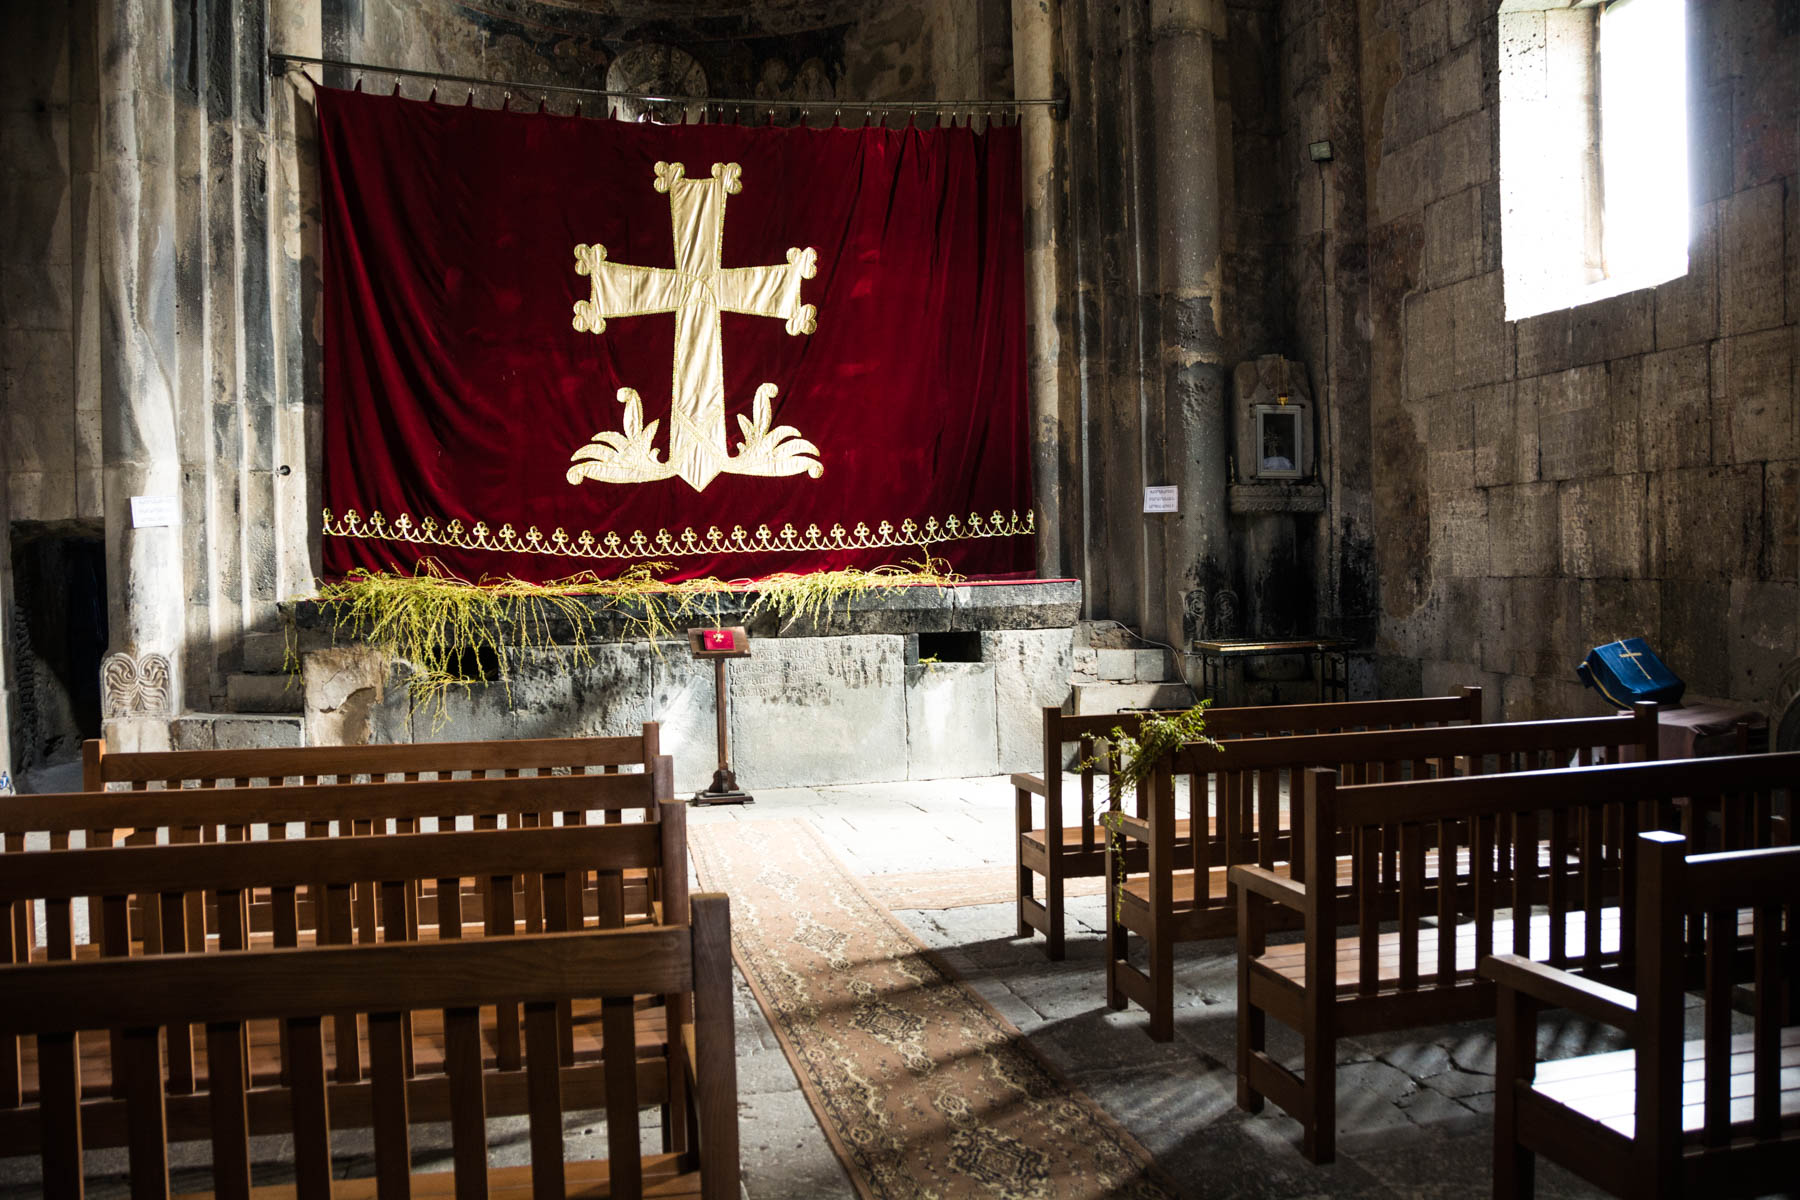 Easter in Armenia - Curtain closed over the altar at Haghpat monastery in Armenia.